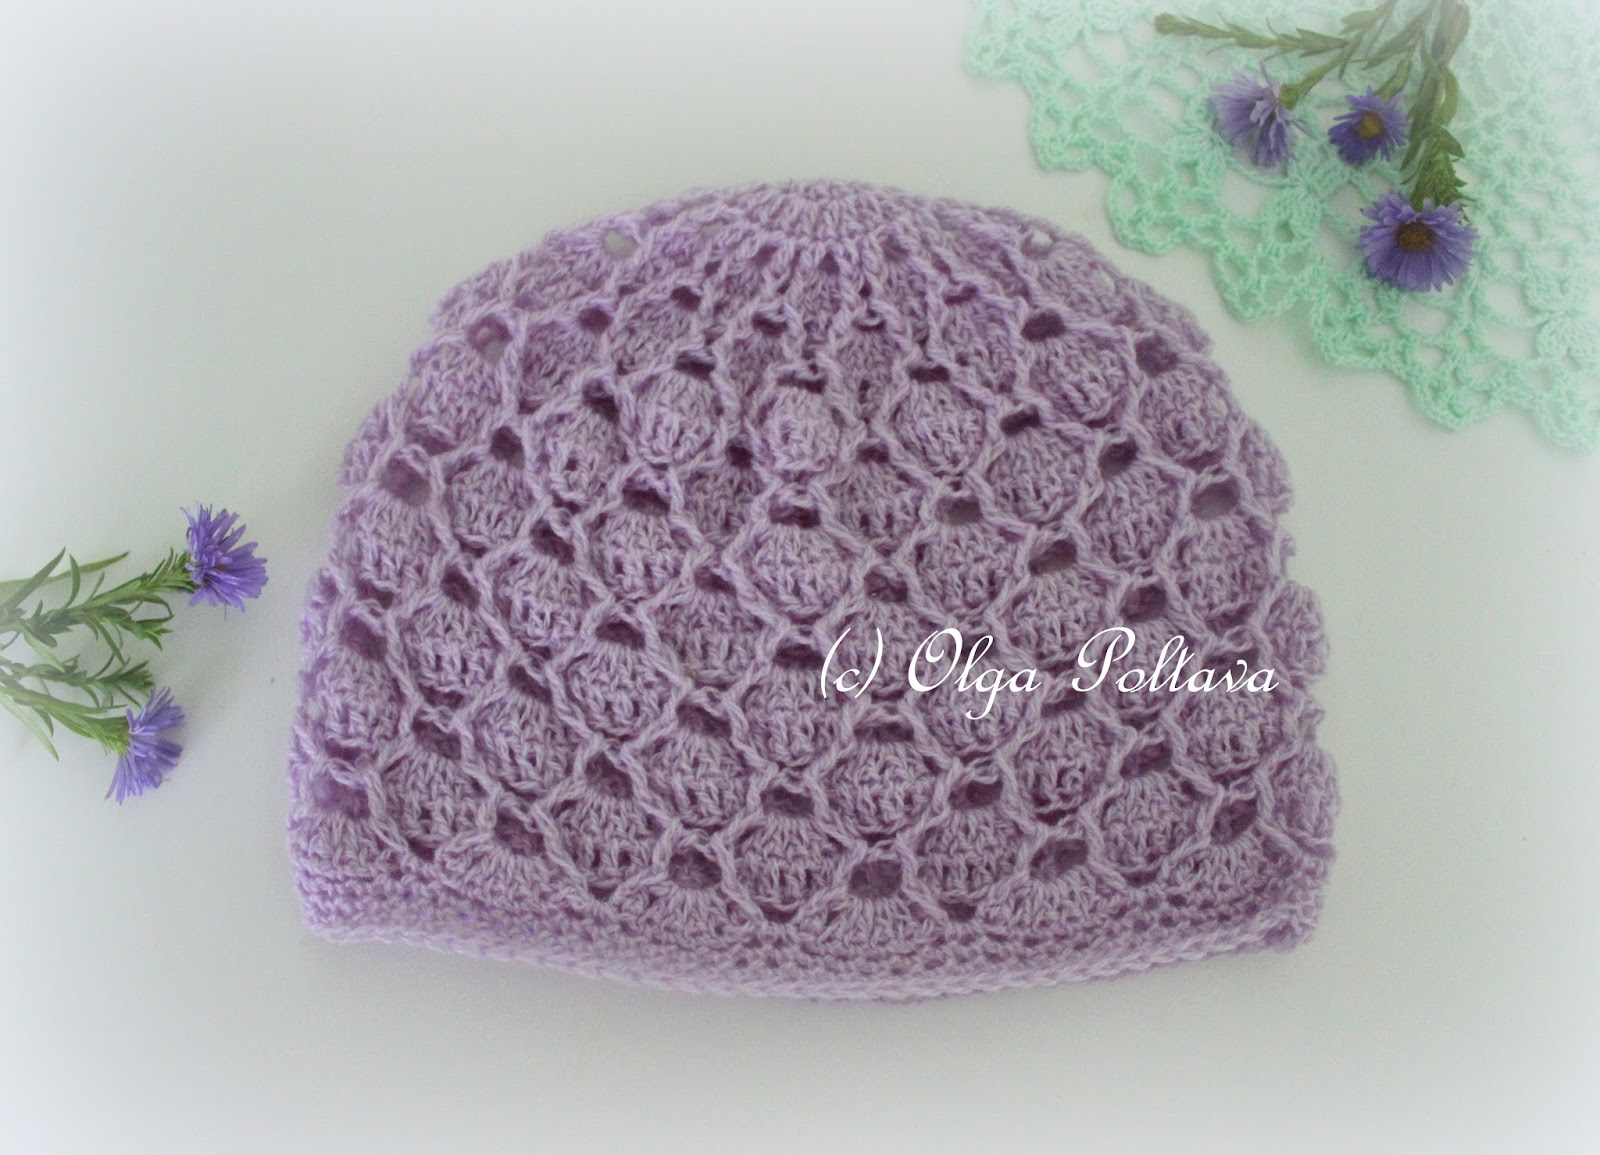 Crochet Beanie Hat Pattern For Babies : Lacy Crochet: Delicate Lace Crochet Baby Hat, Free Pattern ...